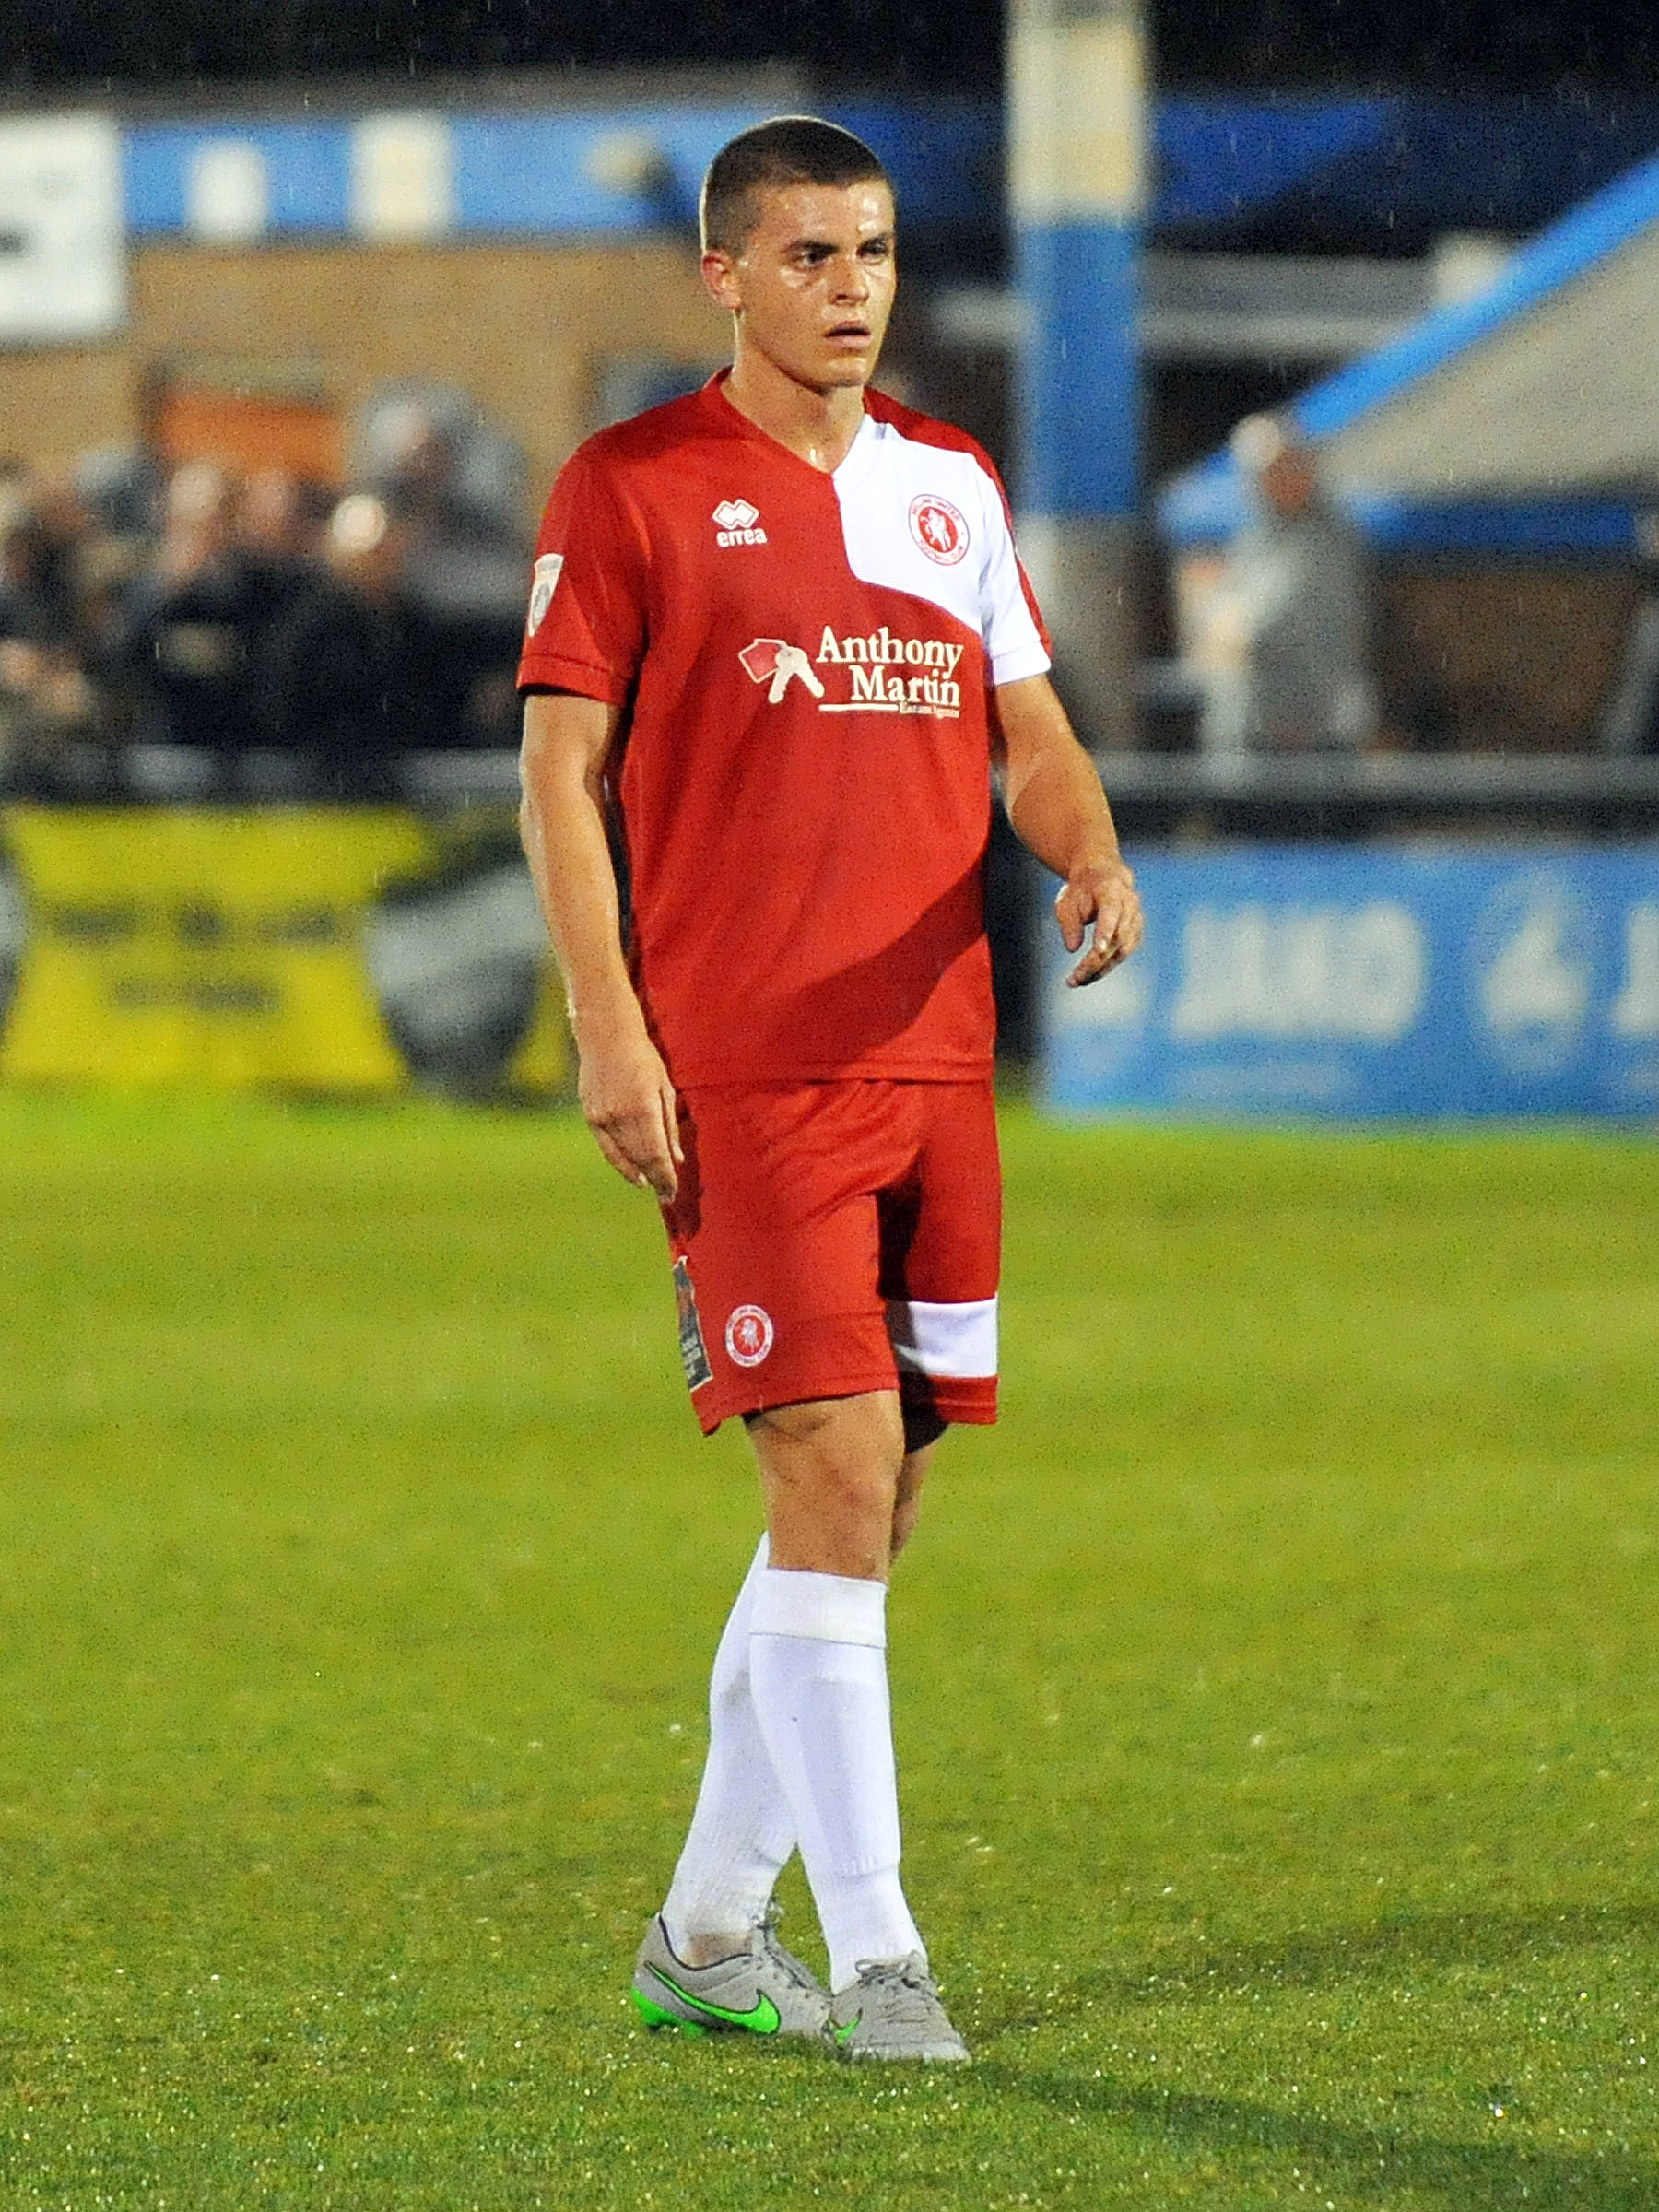 Harry Lee has returned to Orient